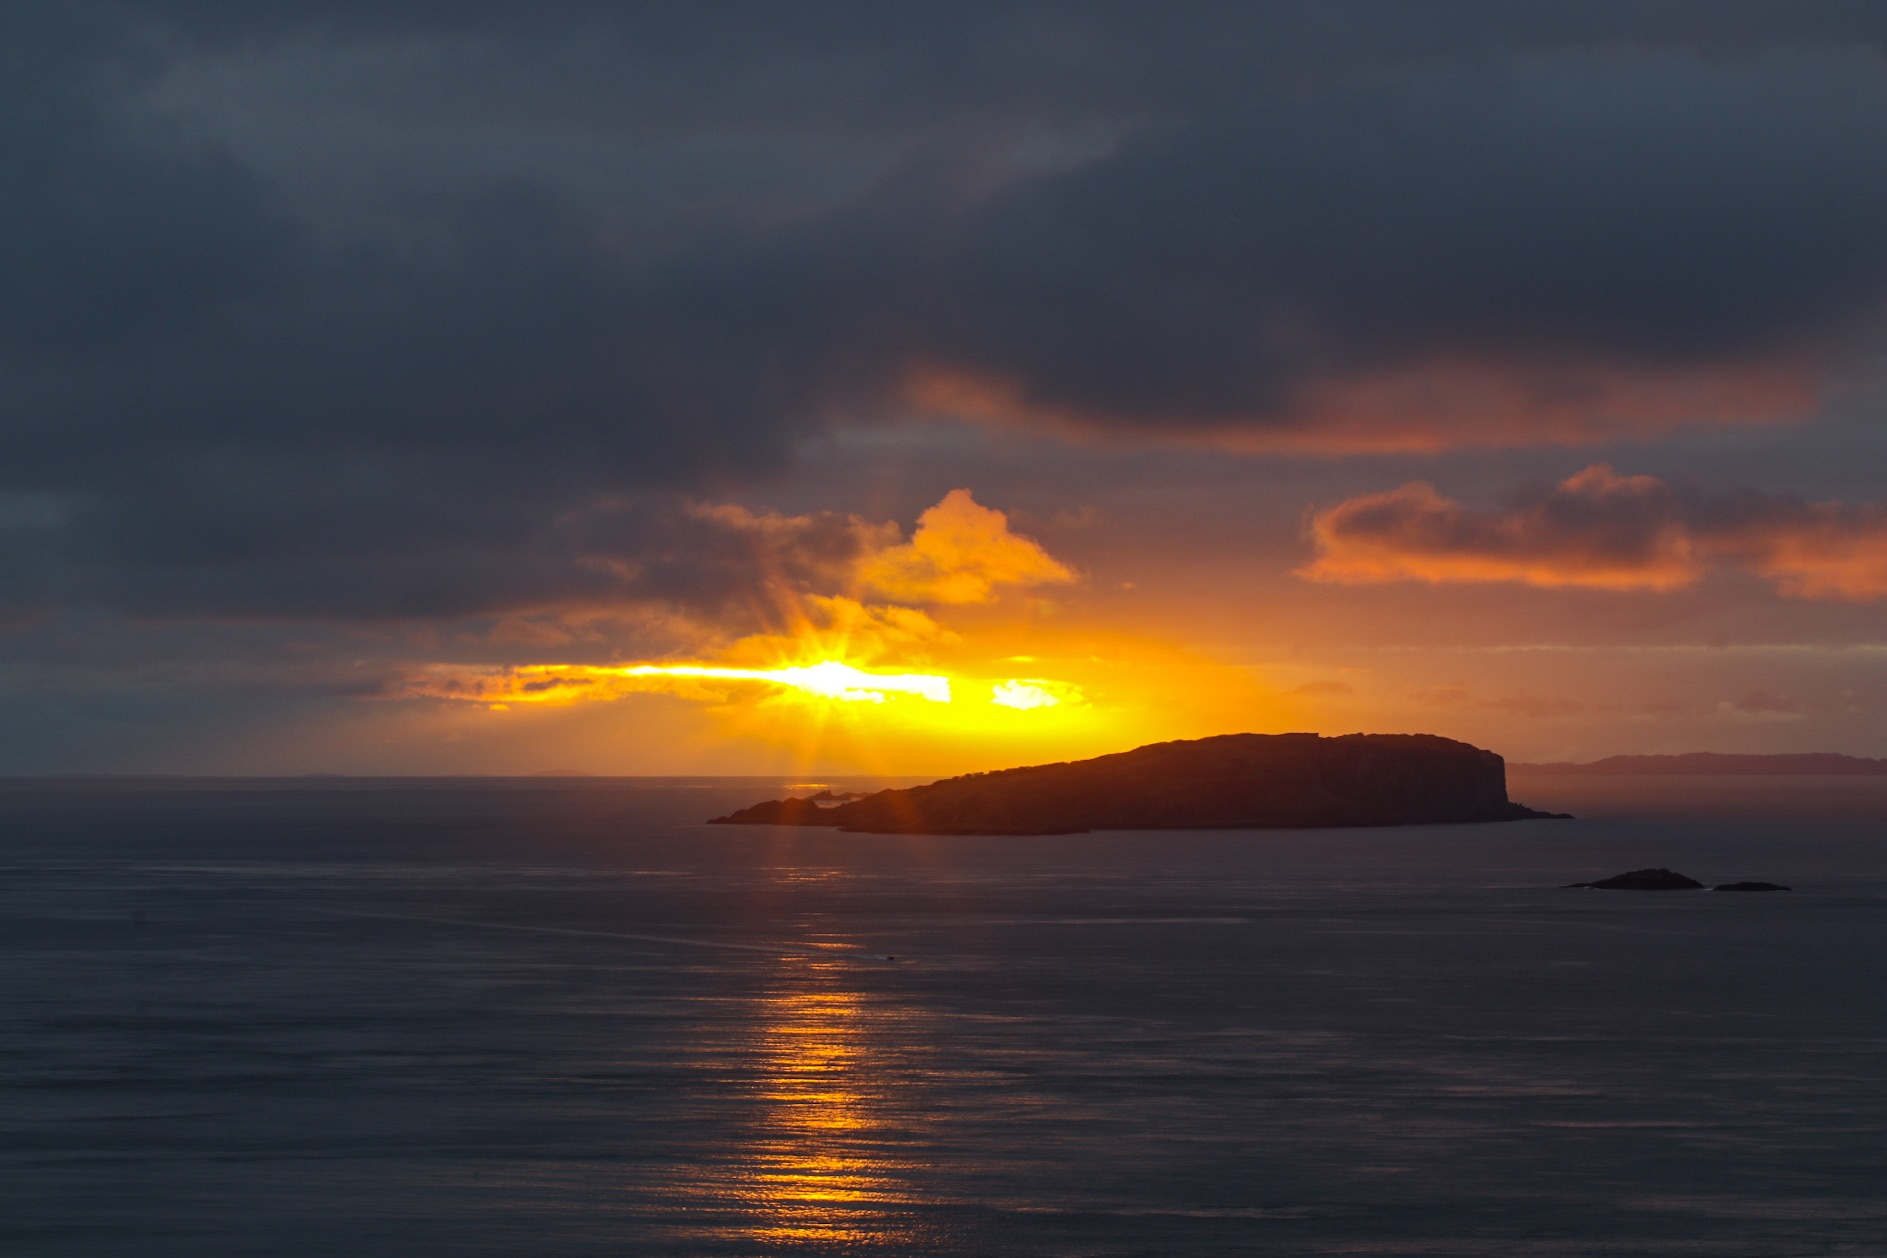 Sunset over the Insh Isle